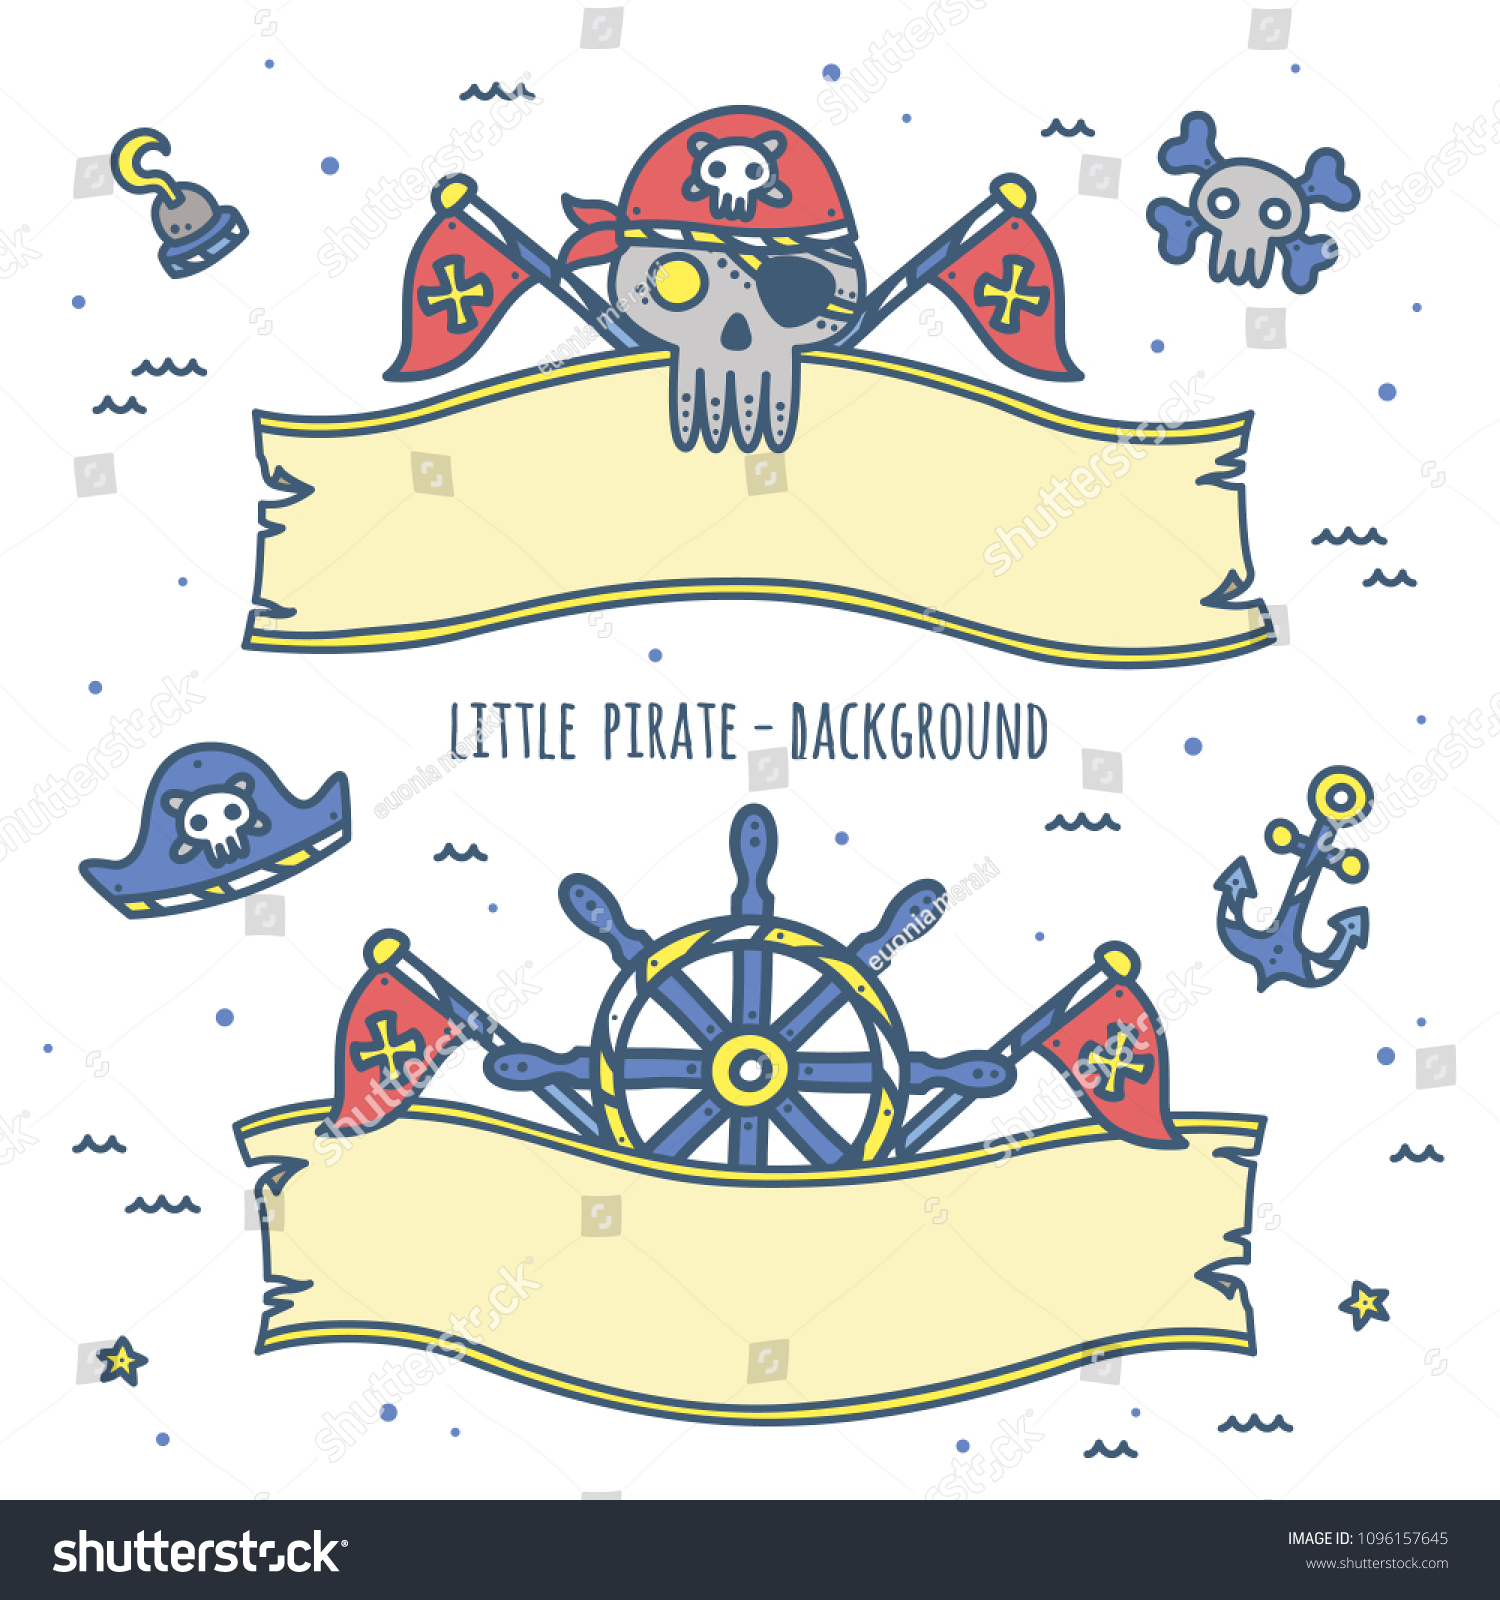 Cute Pirate Theme Graphics Ribbon Background Stock Vector Royalty Free 1096157645